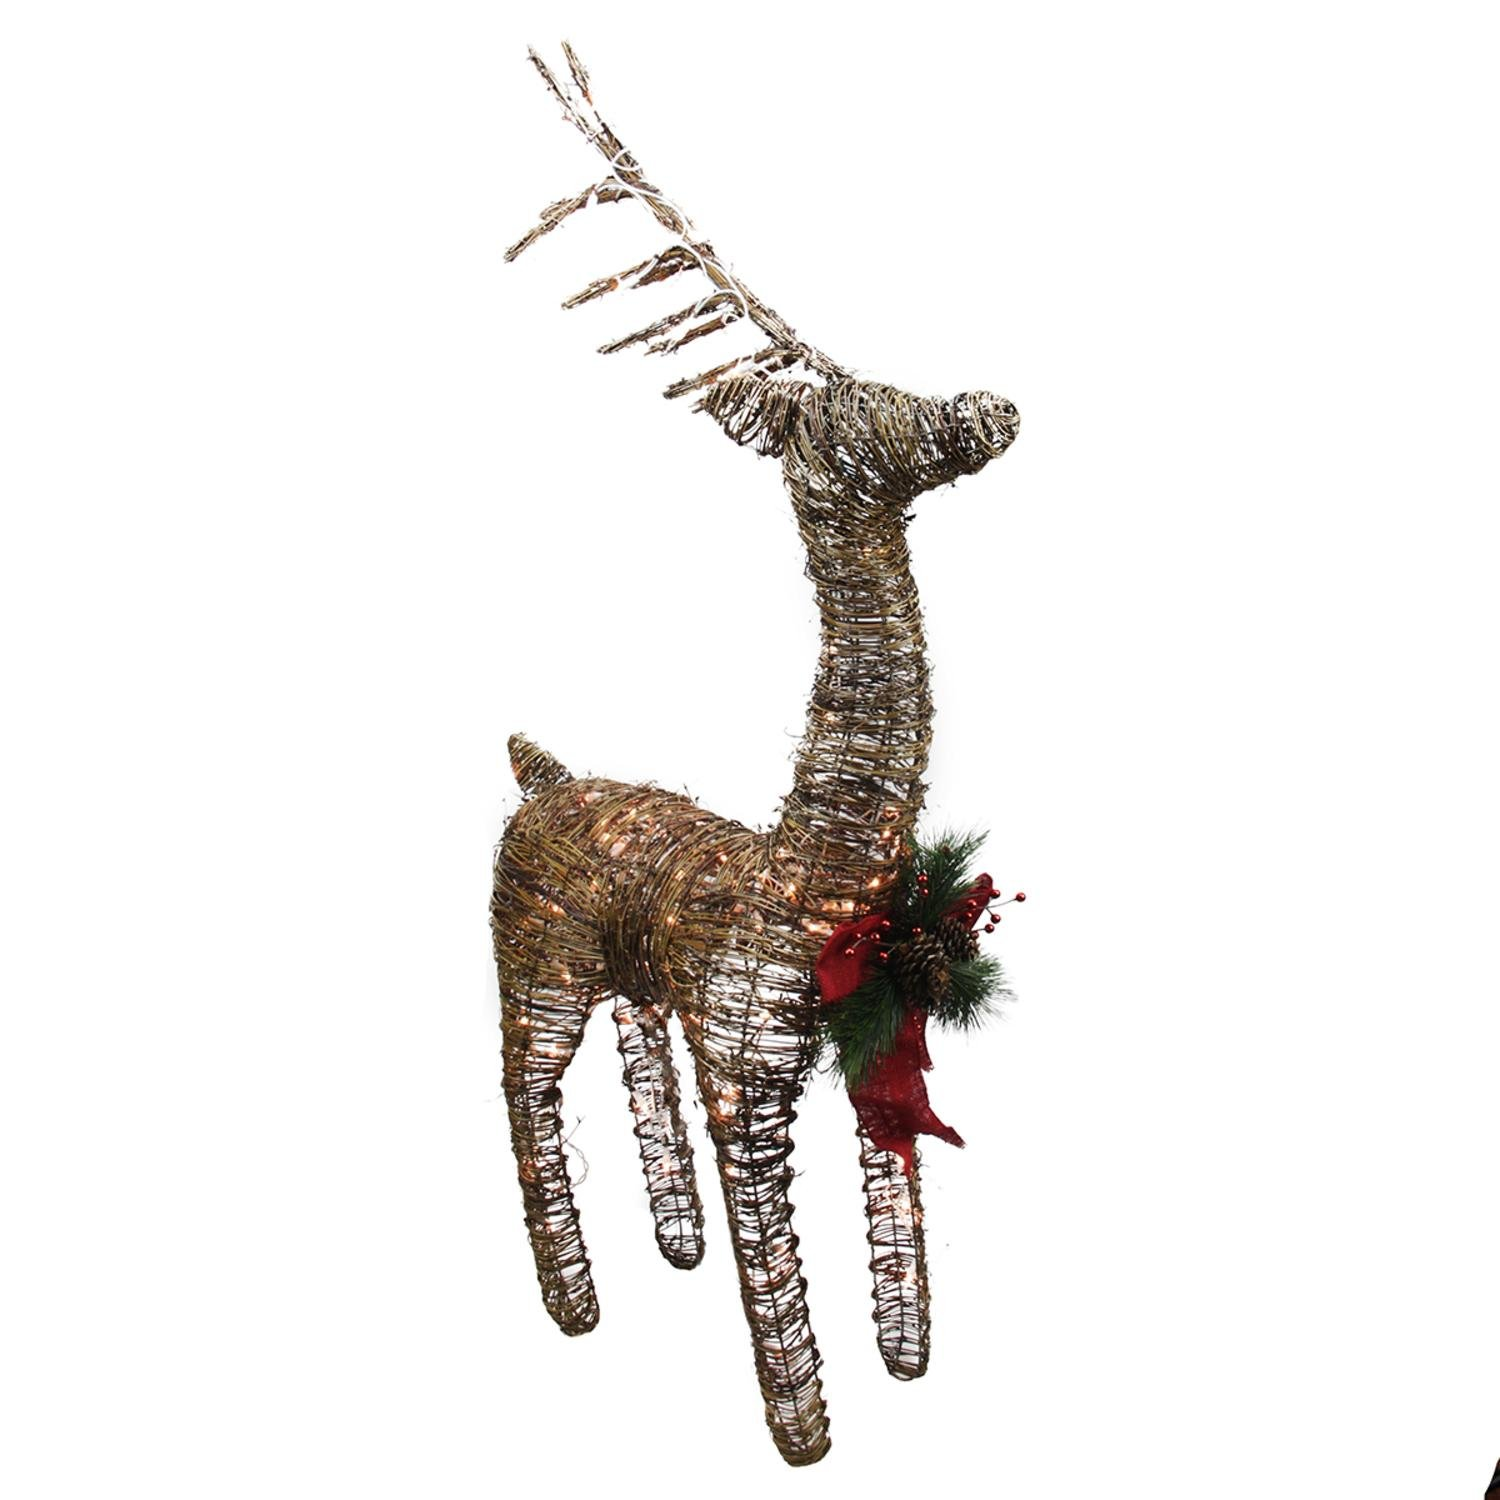 PENN 48'' Lighted Standing Rattan Reindeer with Red Bow and Pine Cones Christmas Yard Art Decoration, Clear